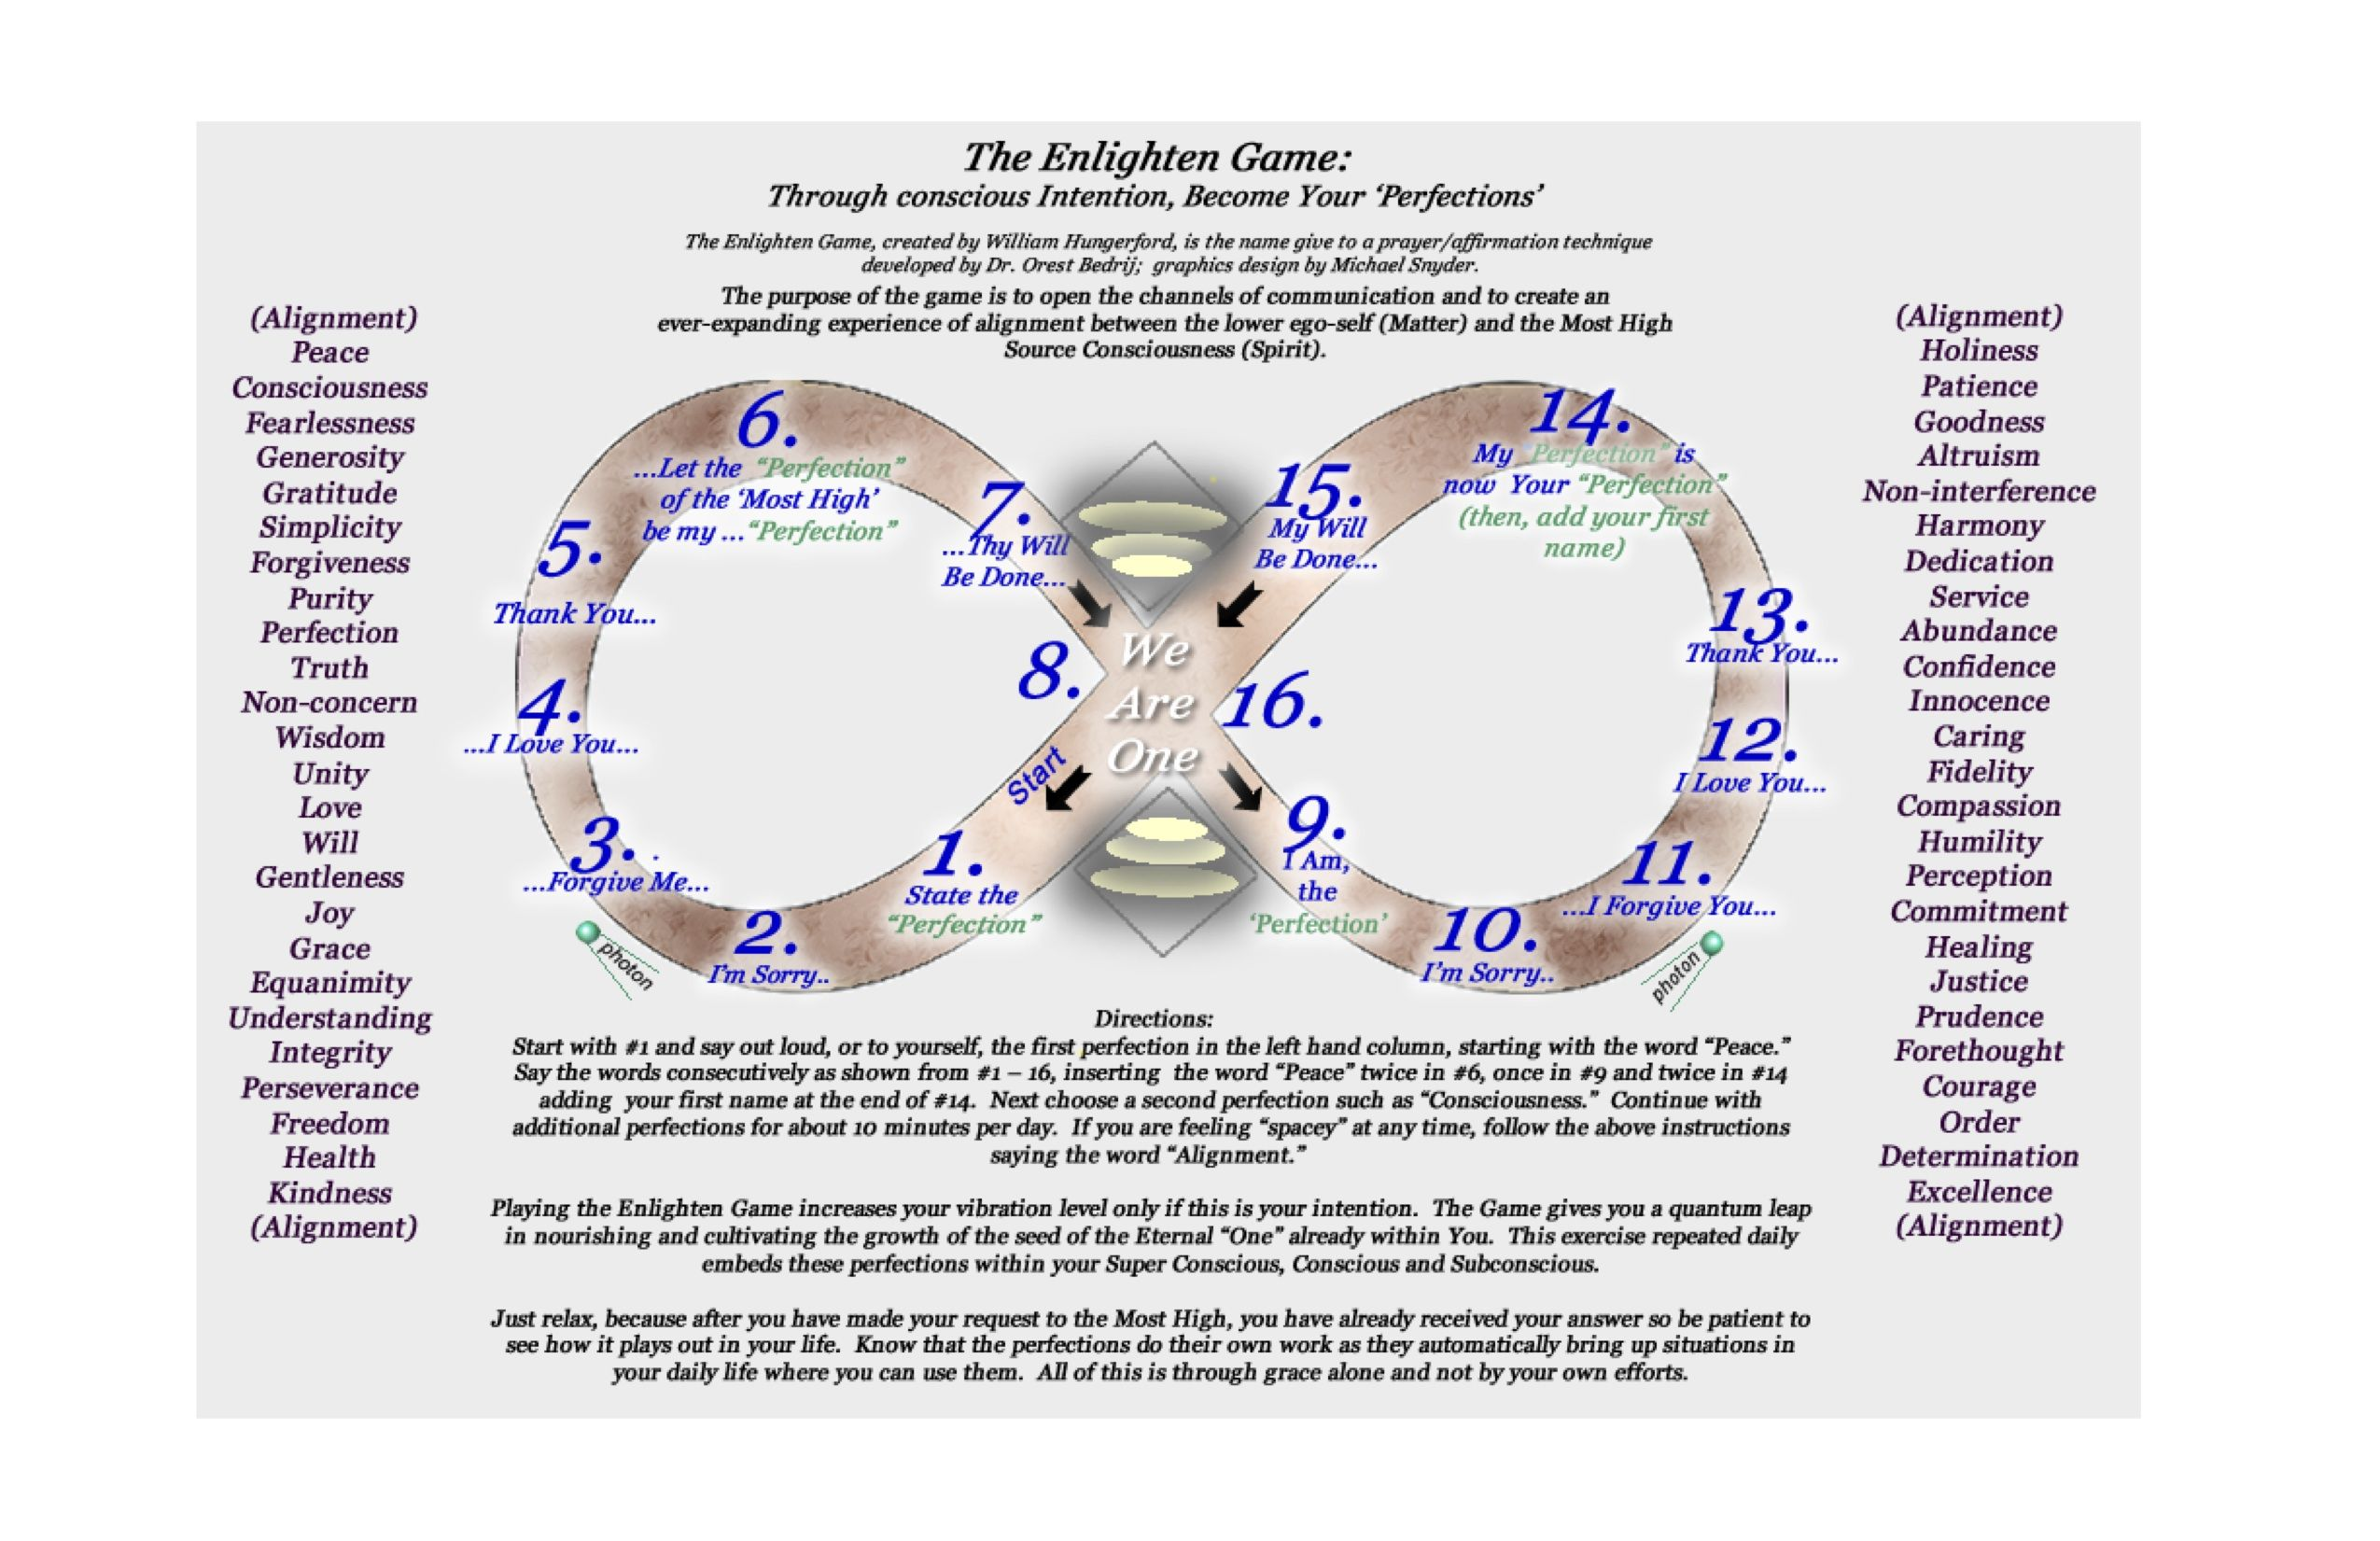 The Enlighten Game Best Way To Raise Your Vibration Quantum Touch Body Chart Enlightenment